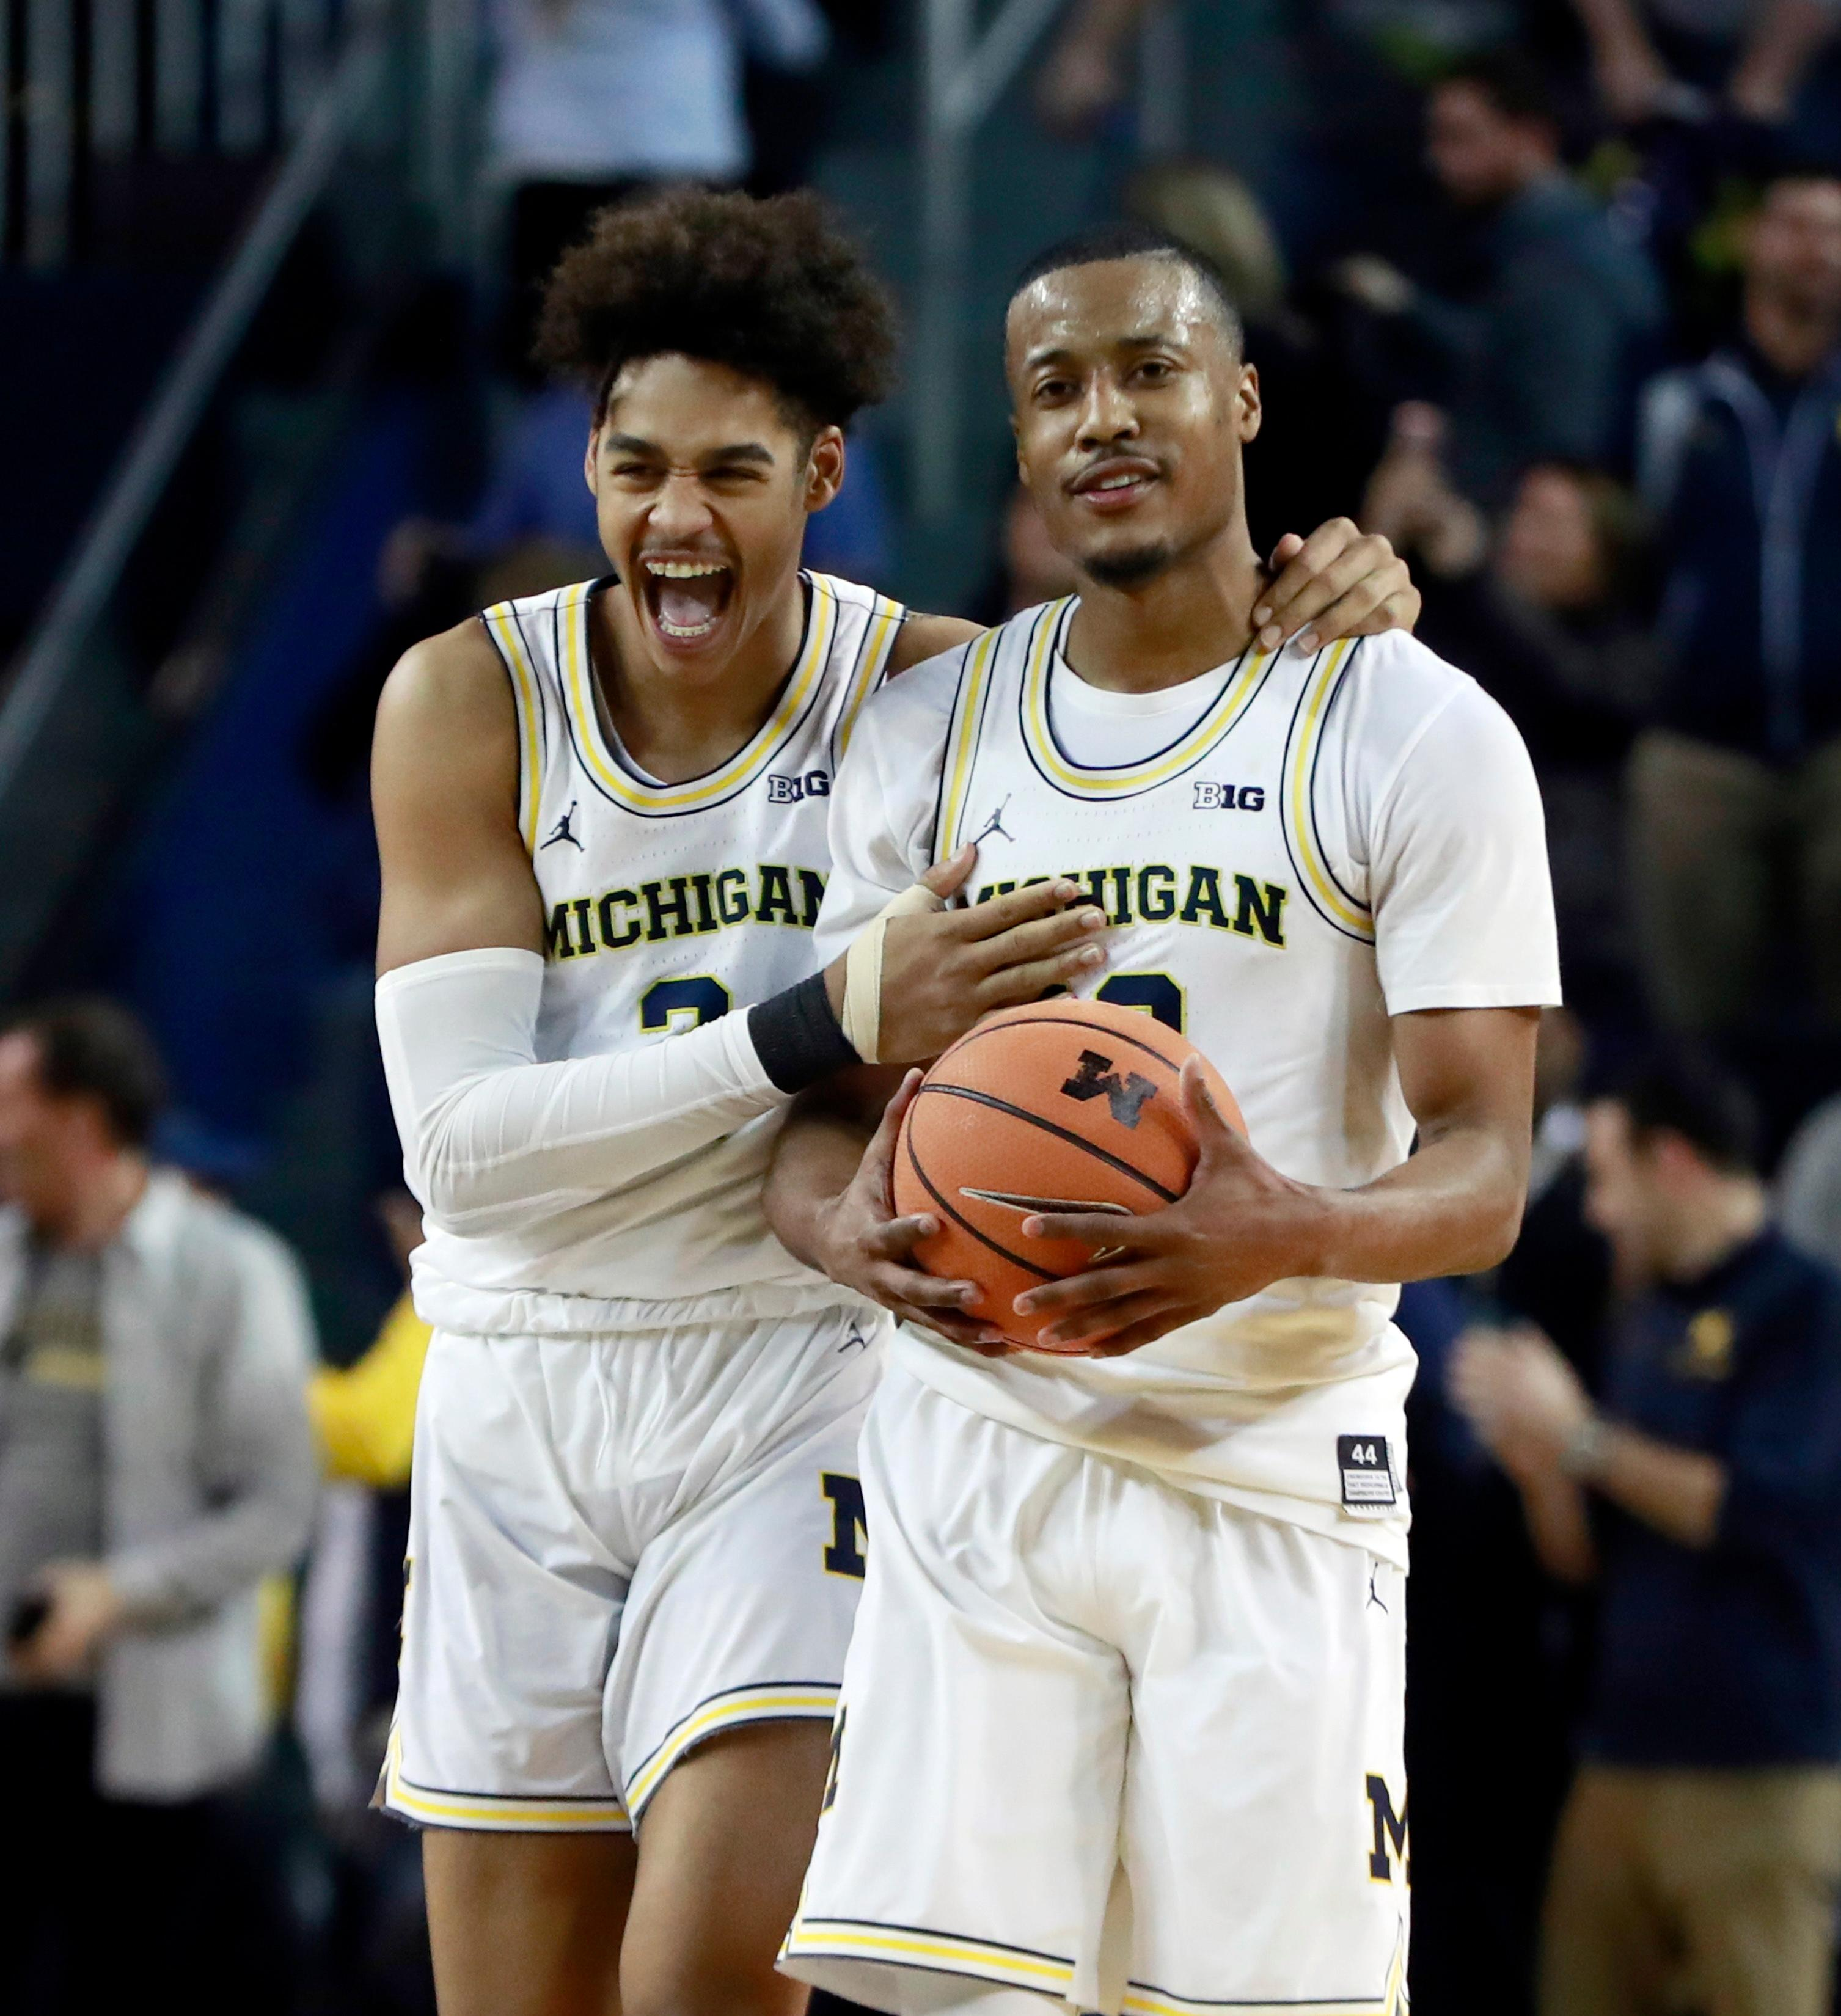 Michigan guard Jordan Poole, left, walks off the court with guard Muhammad-Ali Abdur-Rahkman after the team's 76-73 overtime win over Minnesota in an NCAA college basketball game, Saturday, Feb. 3, 2018, in Ann Arbor, Mich. (AP Photo/Carlos Osorio)